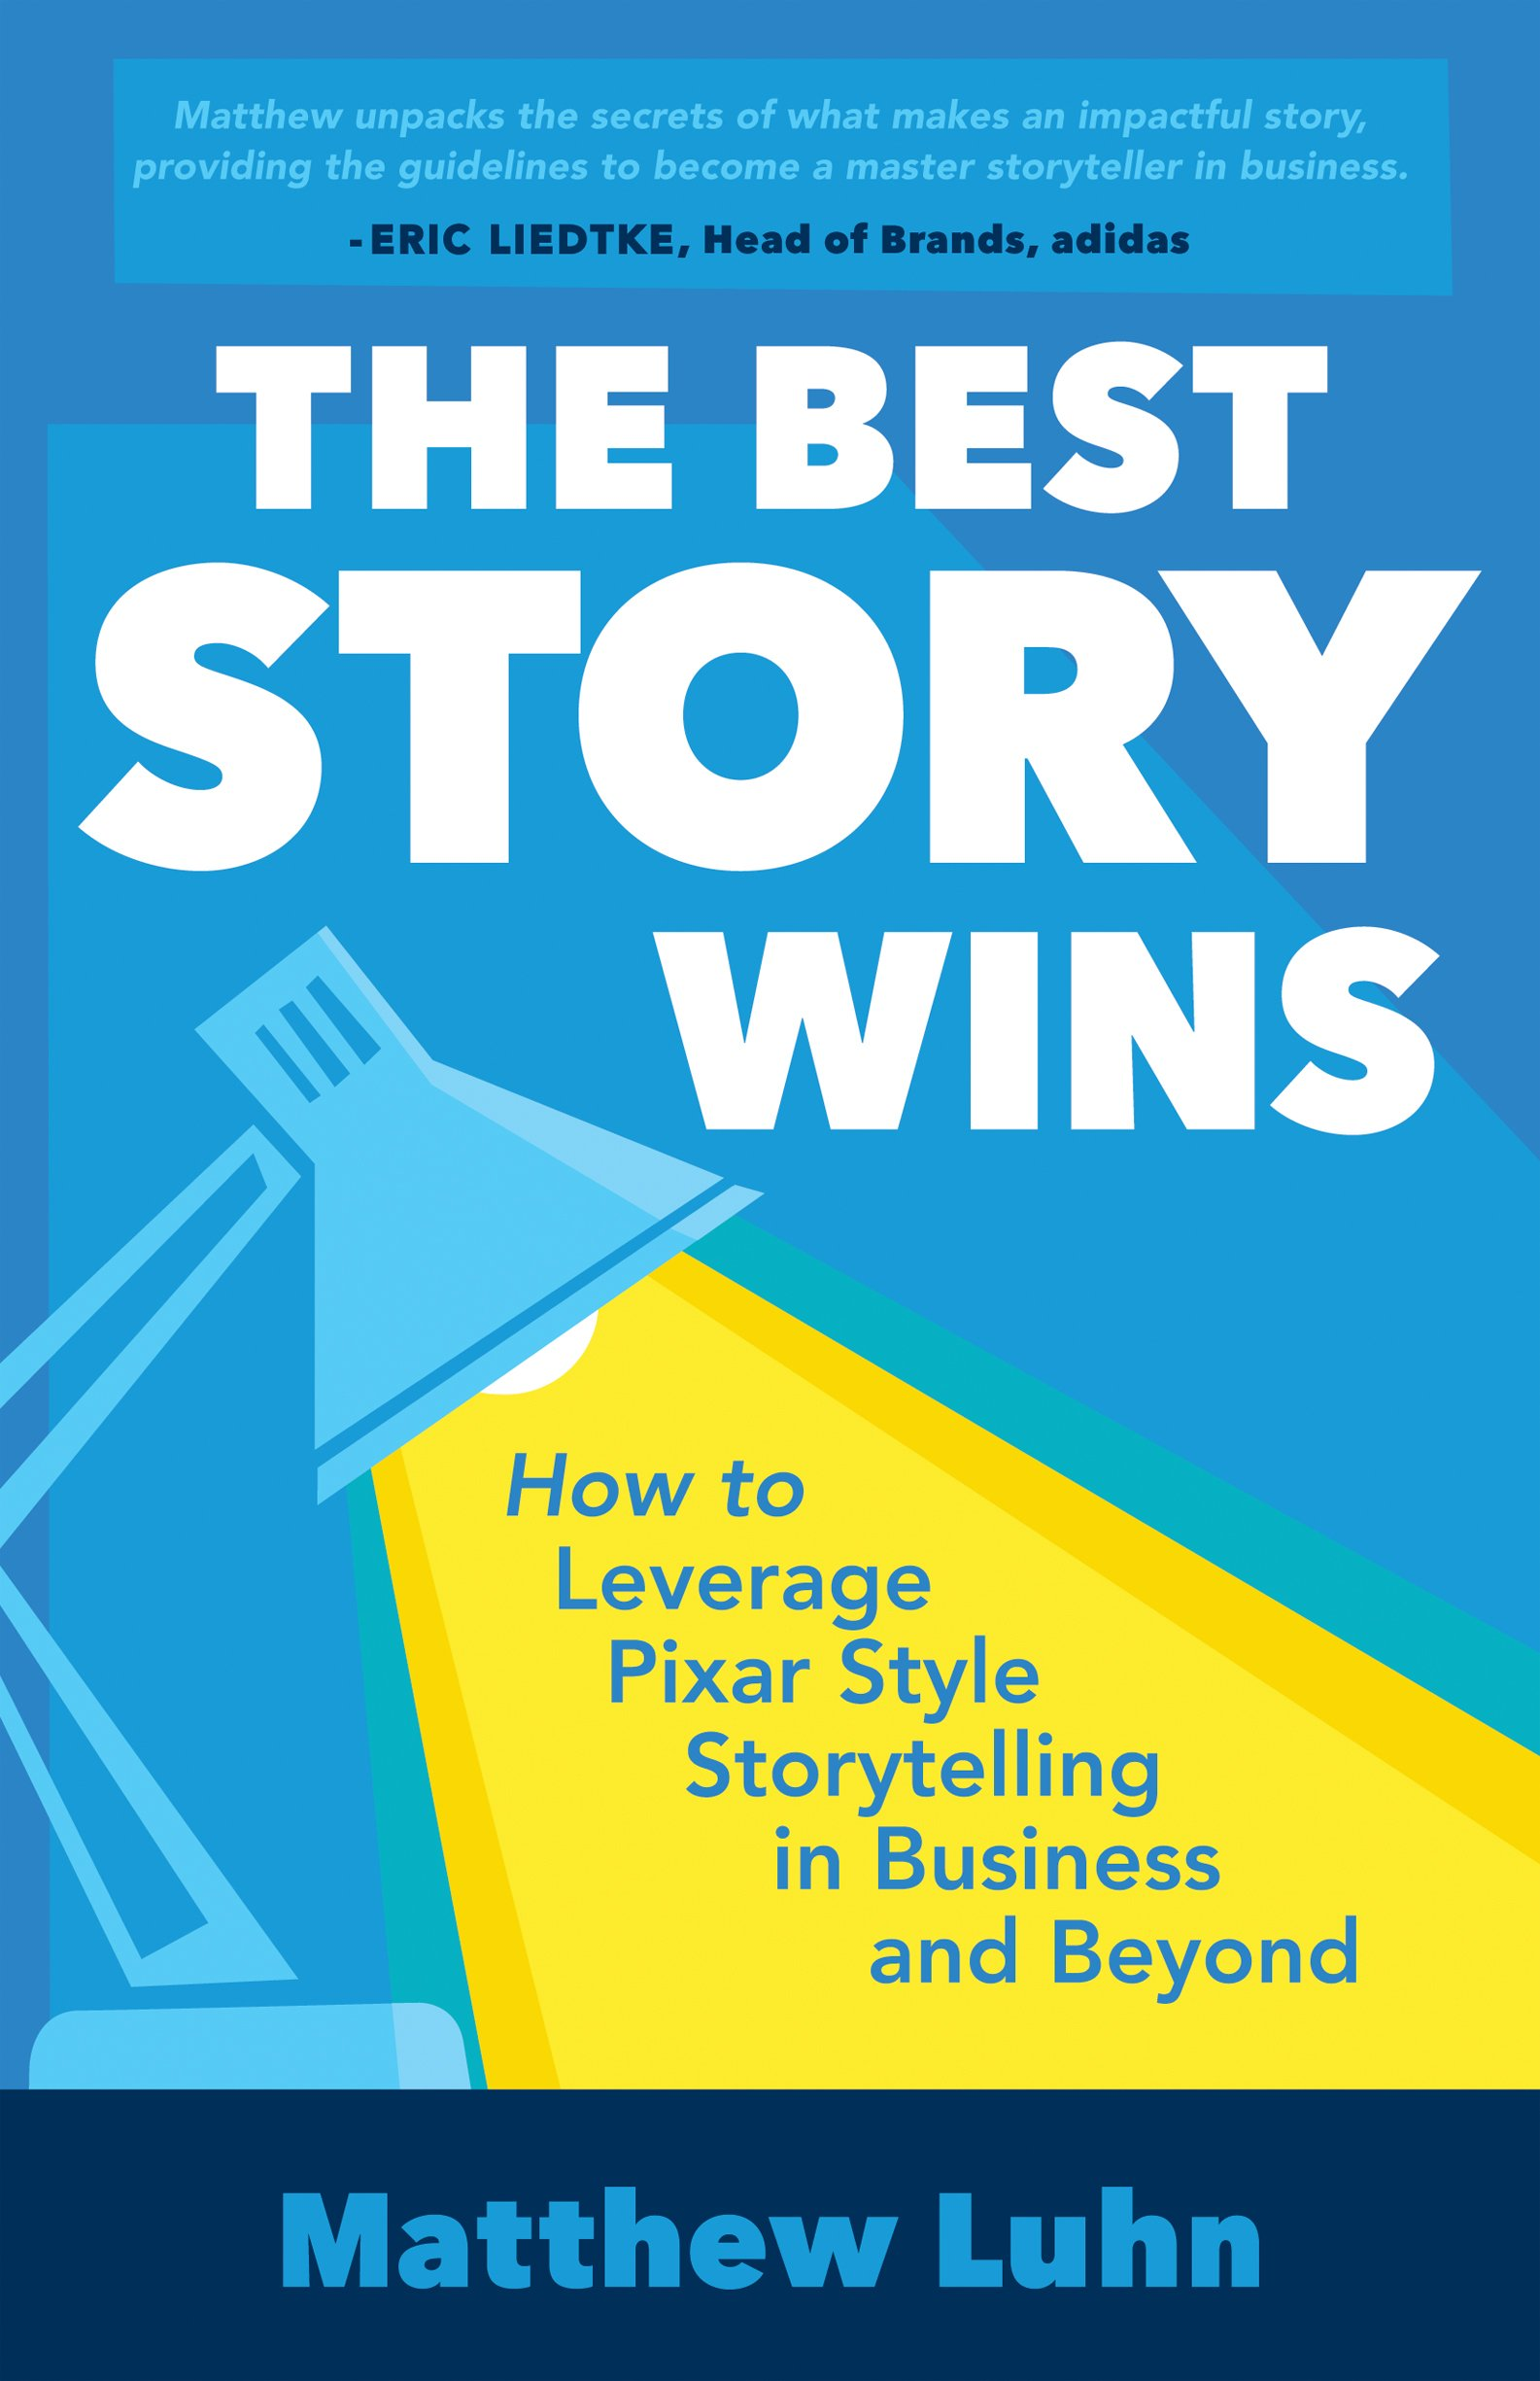 The Best Story Wins: How to Leverage Pixar Style Storytelling in Business and Beyond